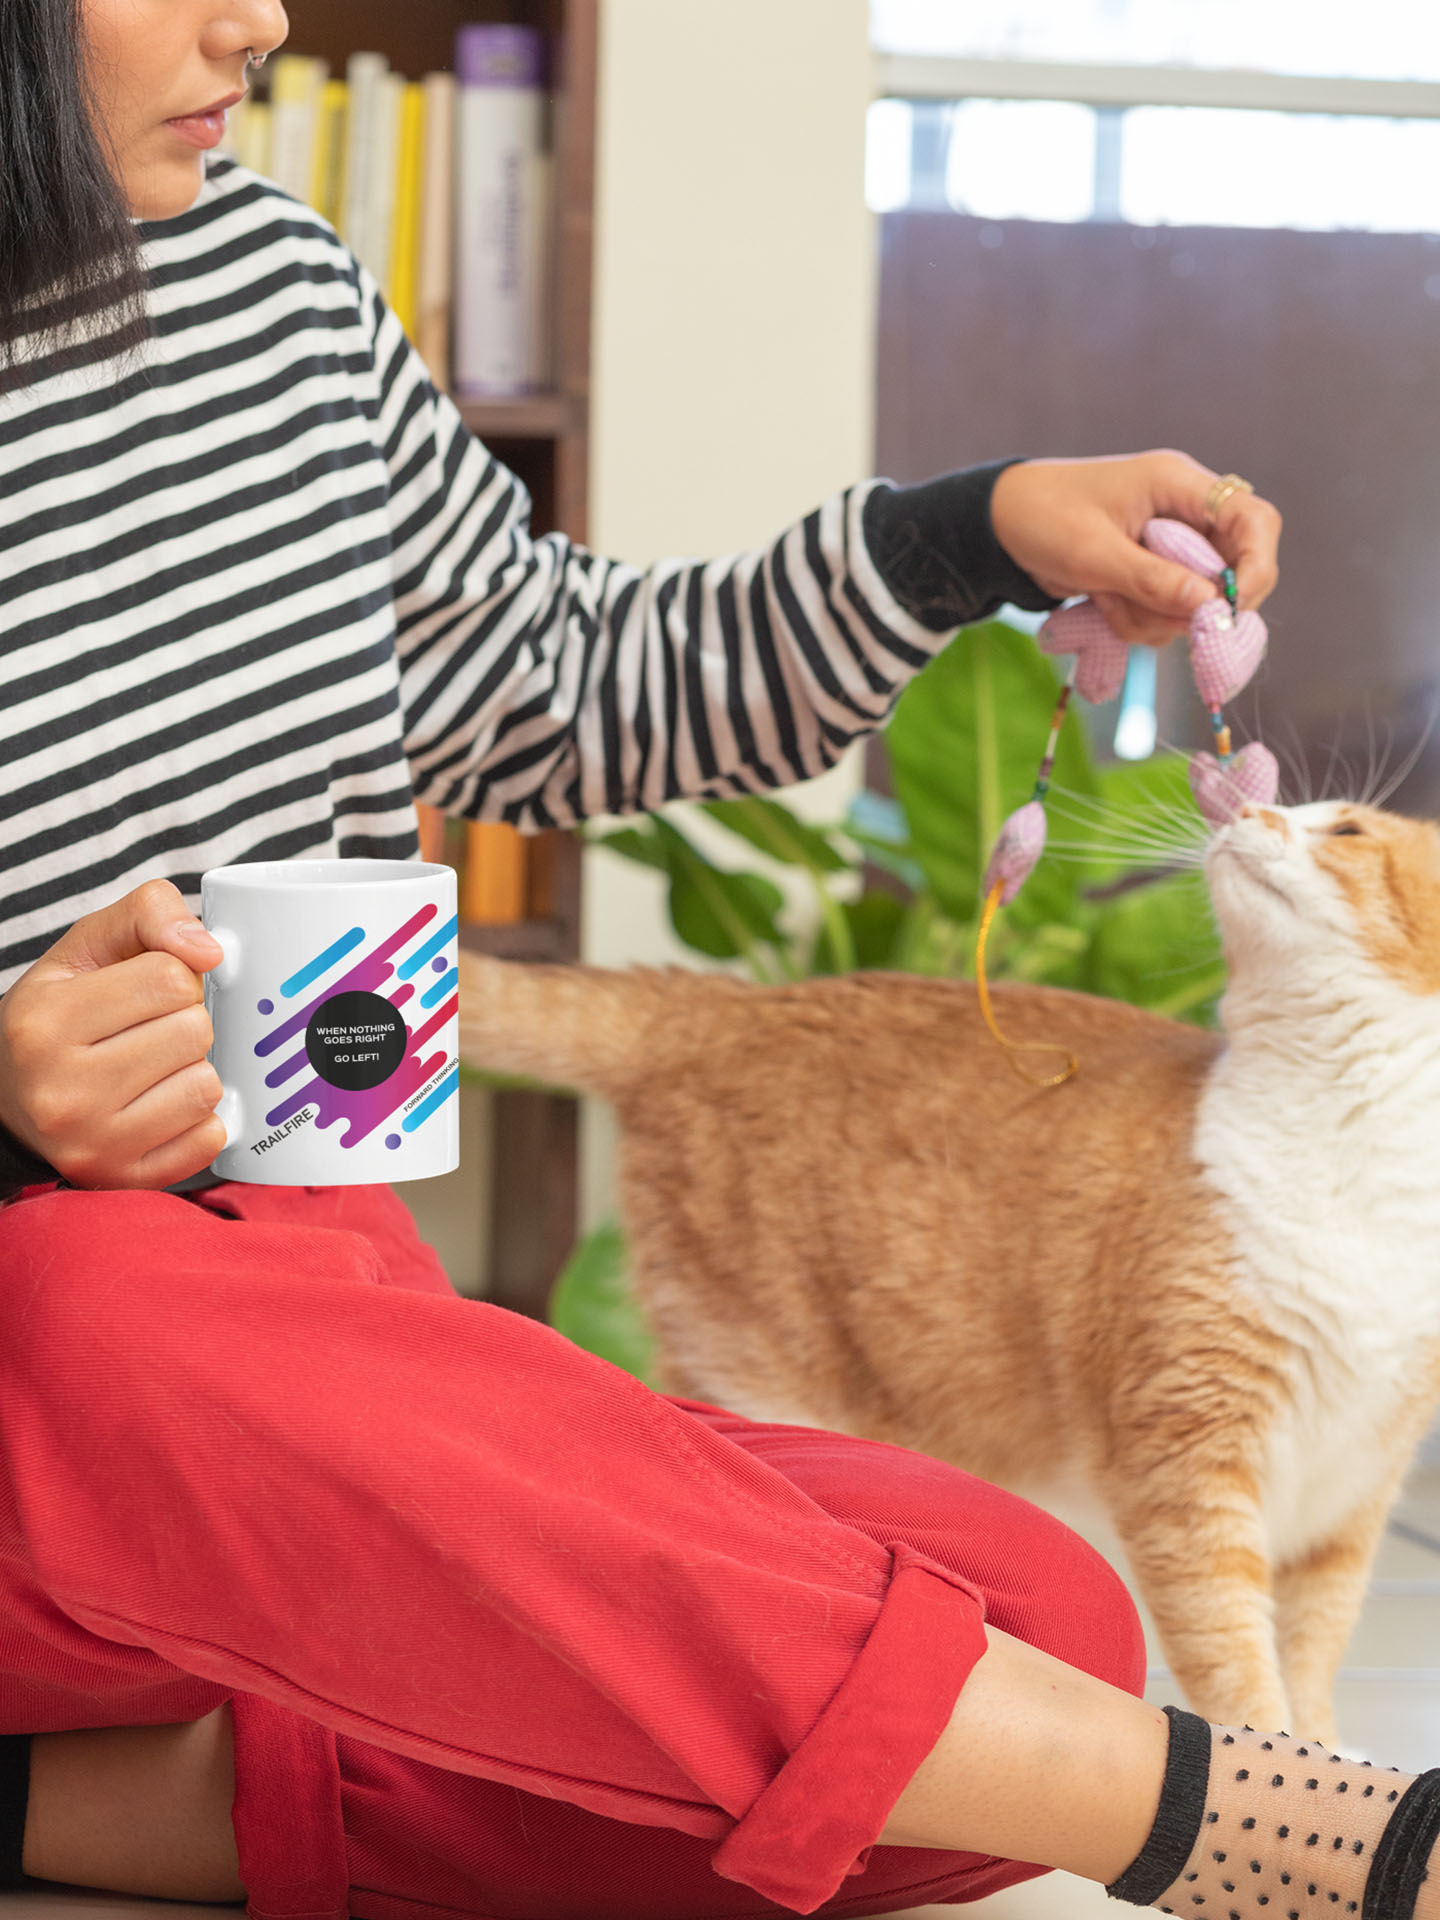 Spredshirt-Prints-Trailfire_0050_11-oz-mug-mockup-of-a-woman-playing-with-her-cat-at-home-30667